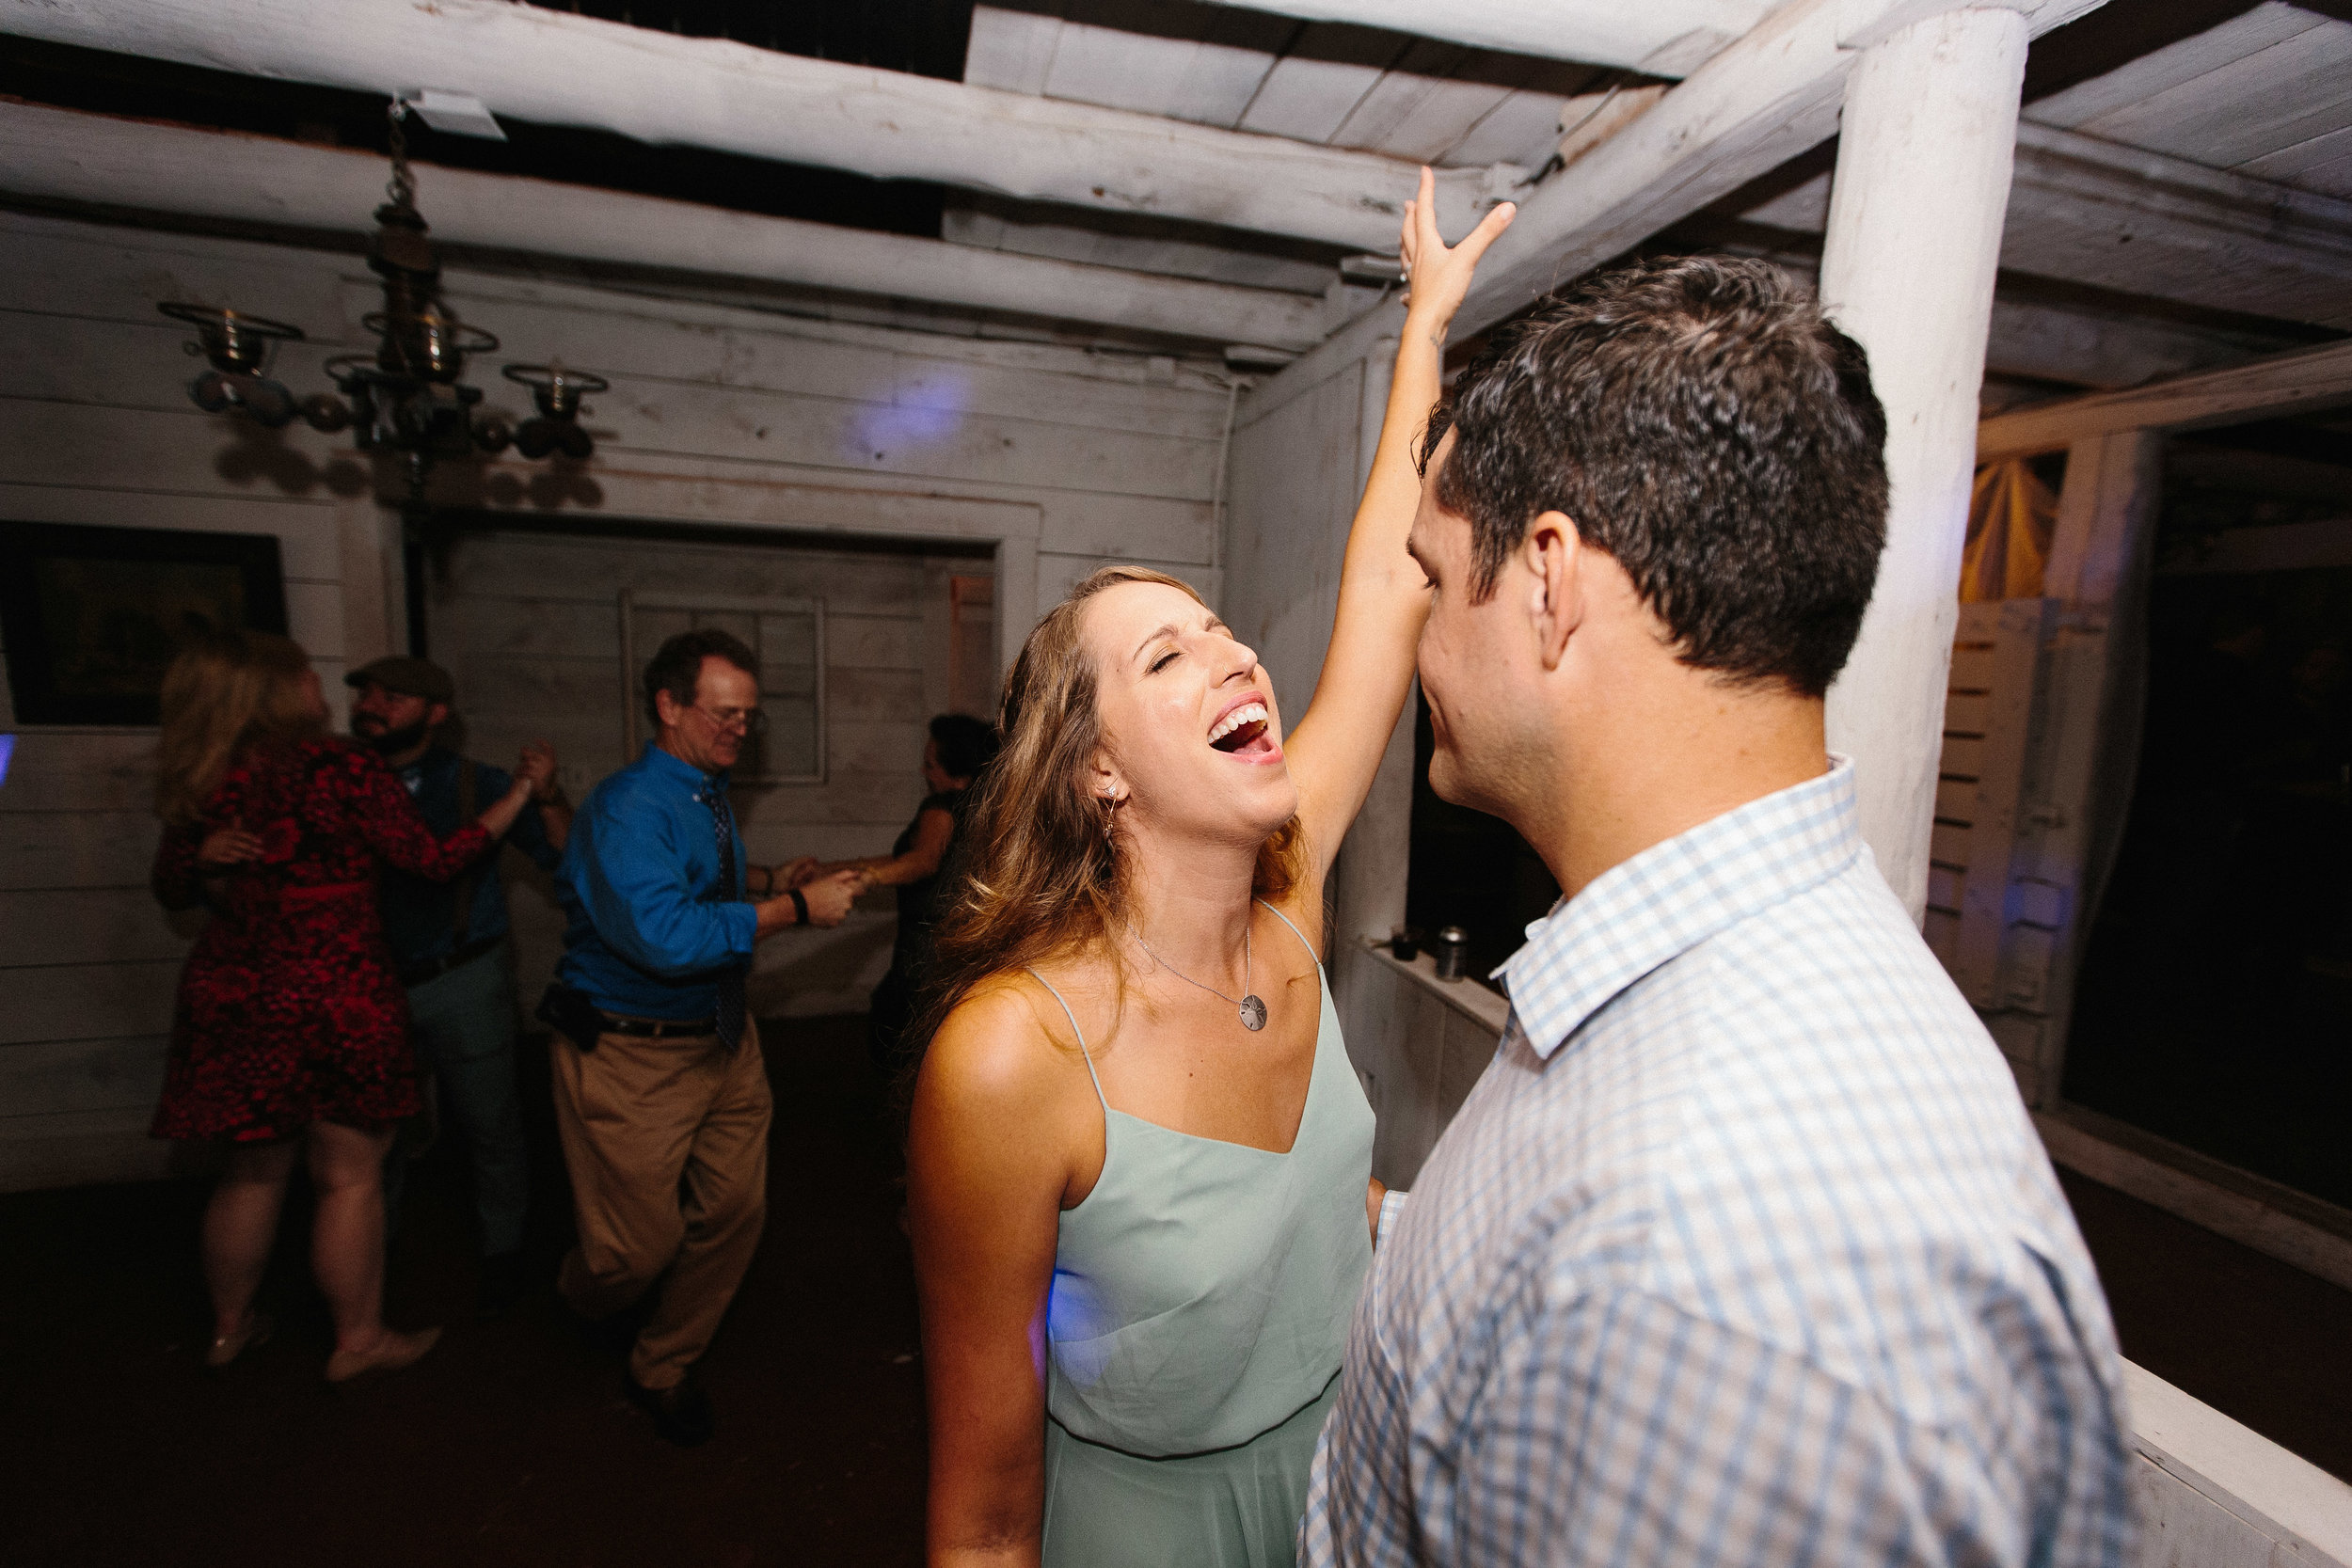 cleveland_georgia_mountain_laurel_farm_natural_classic_timeless_documentary_candid_wedding_emotional_photojournalism_river_west_2184.jpg